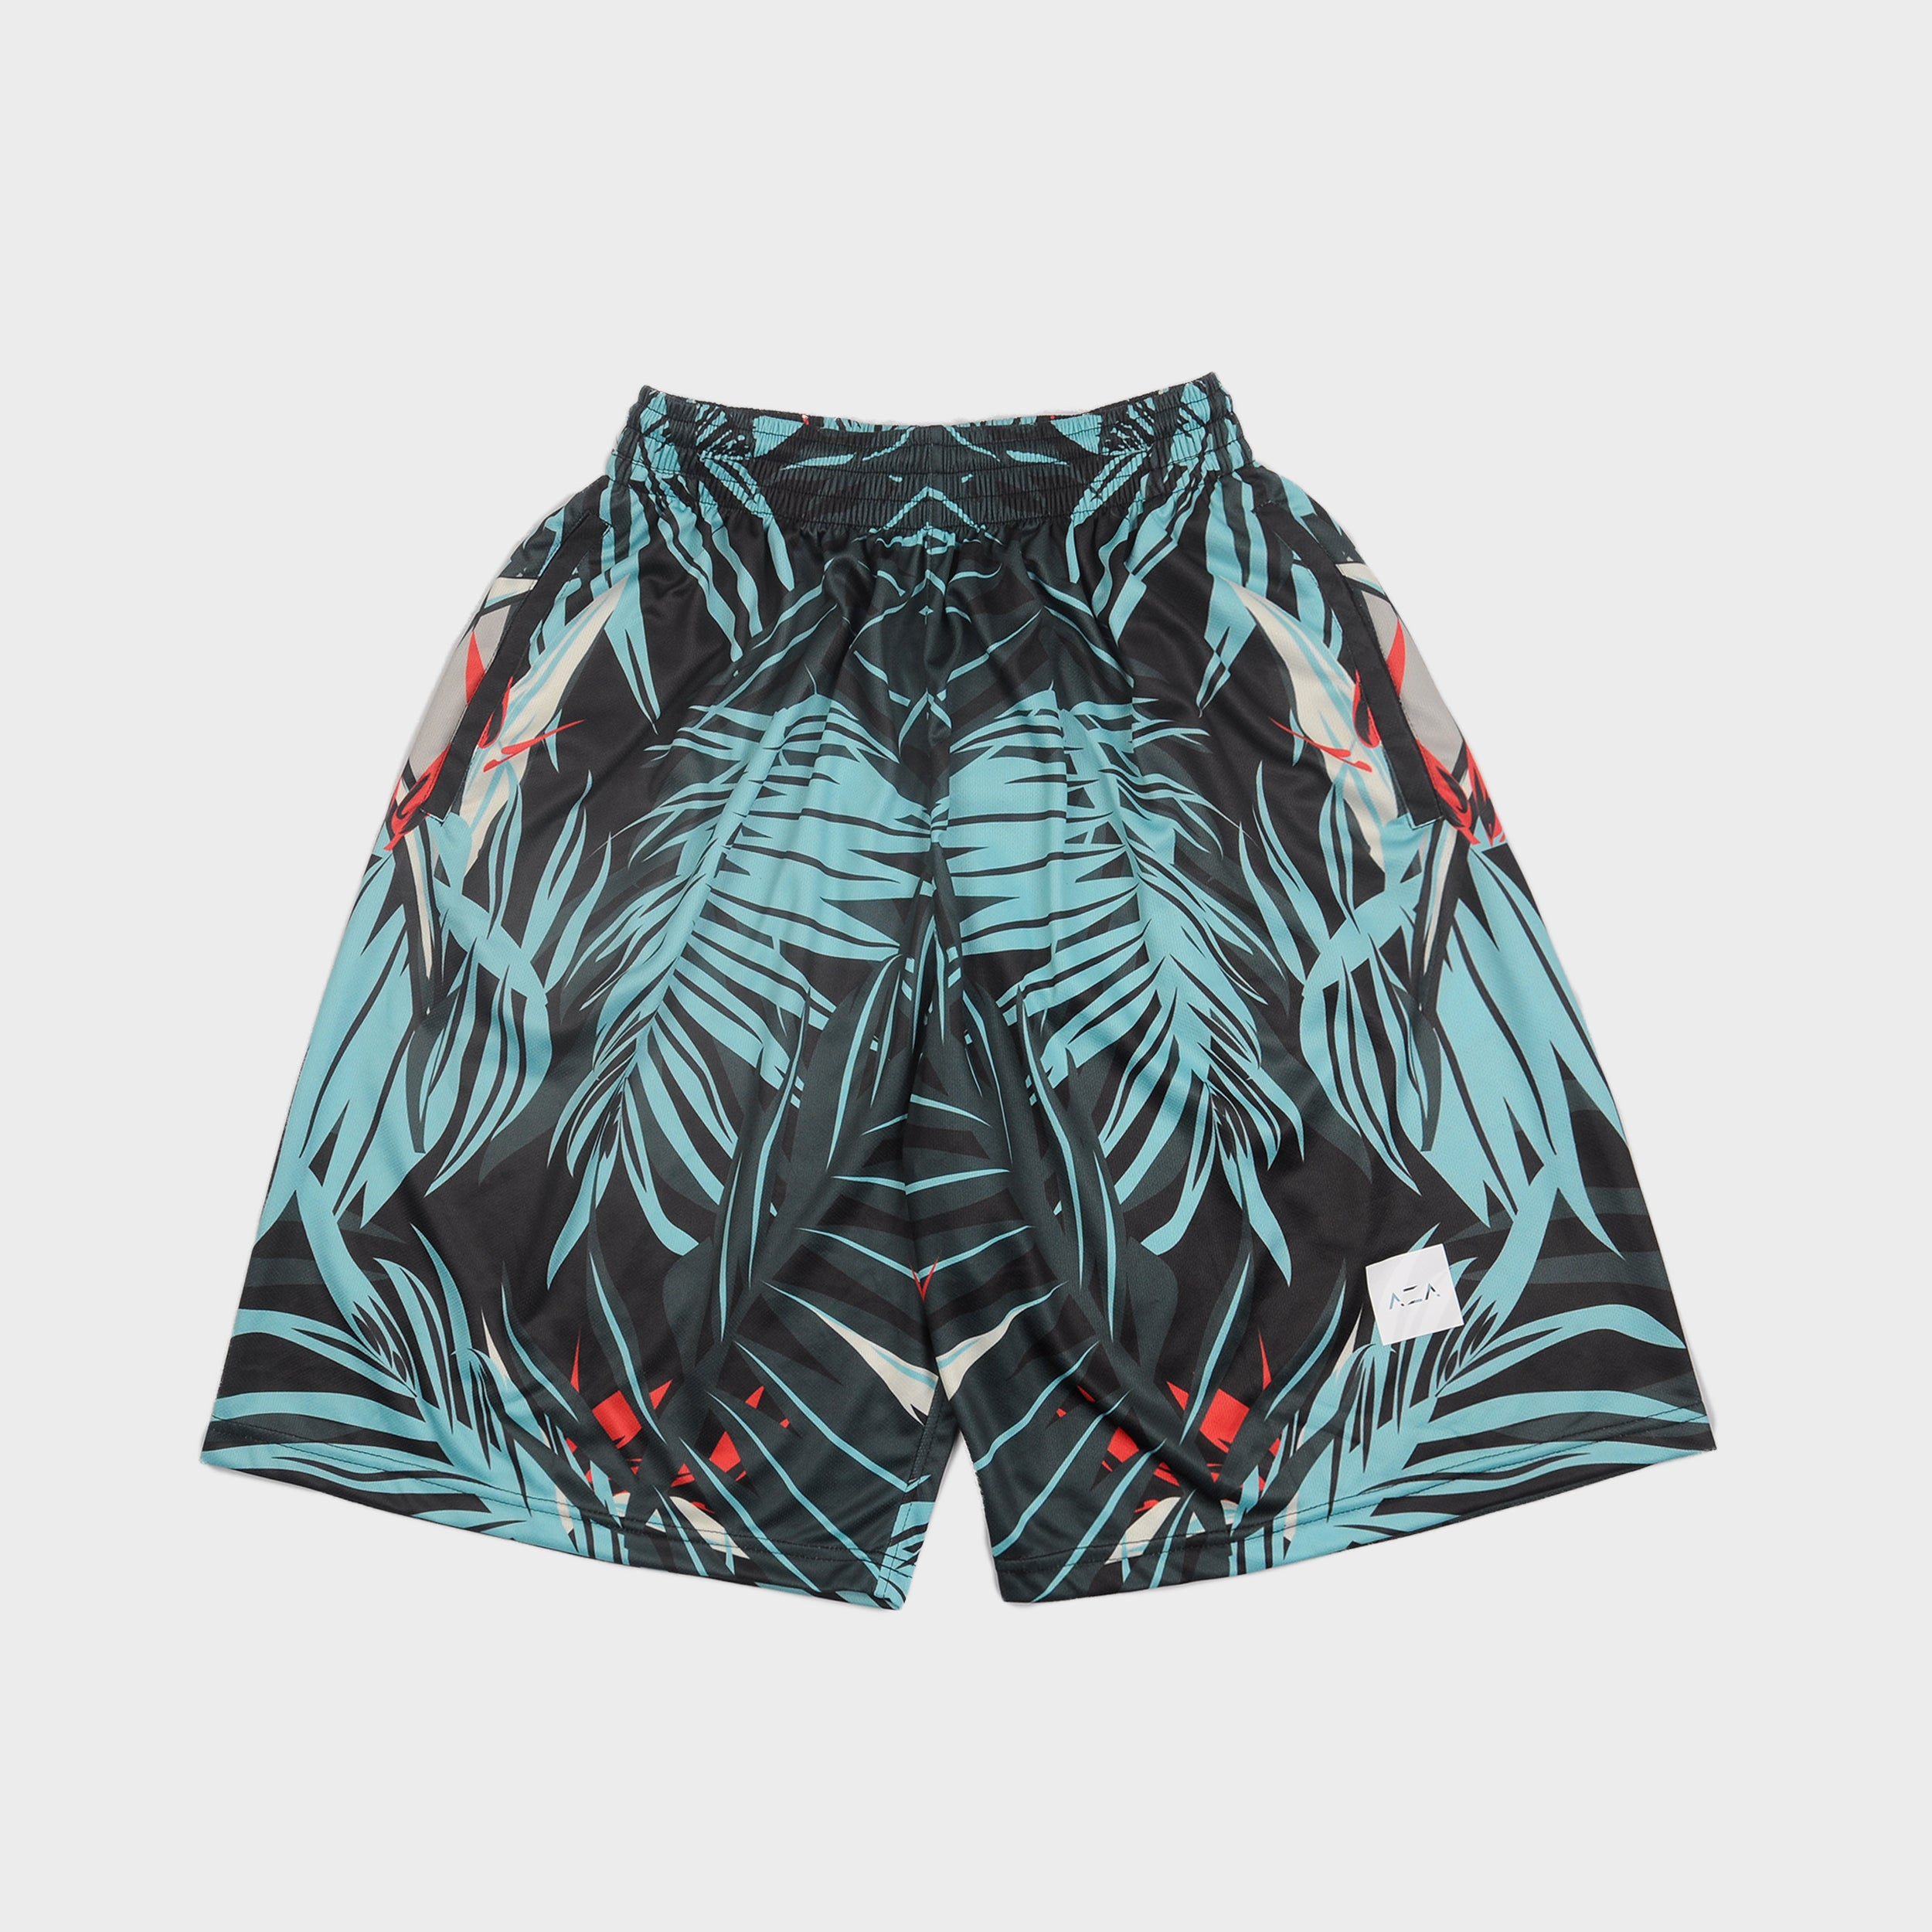 AZA Icon Floral Short - Black